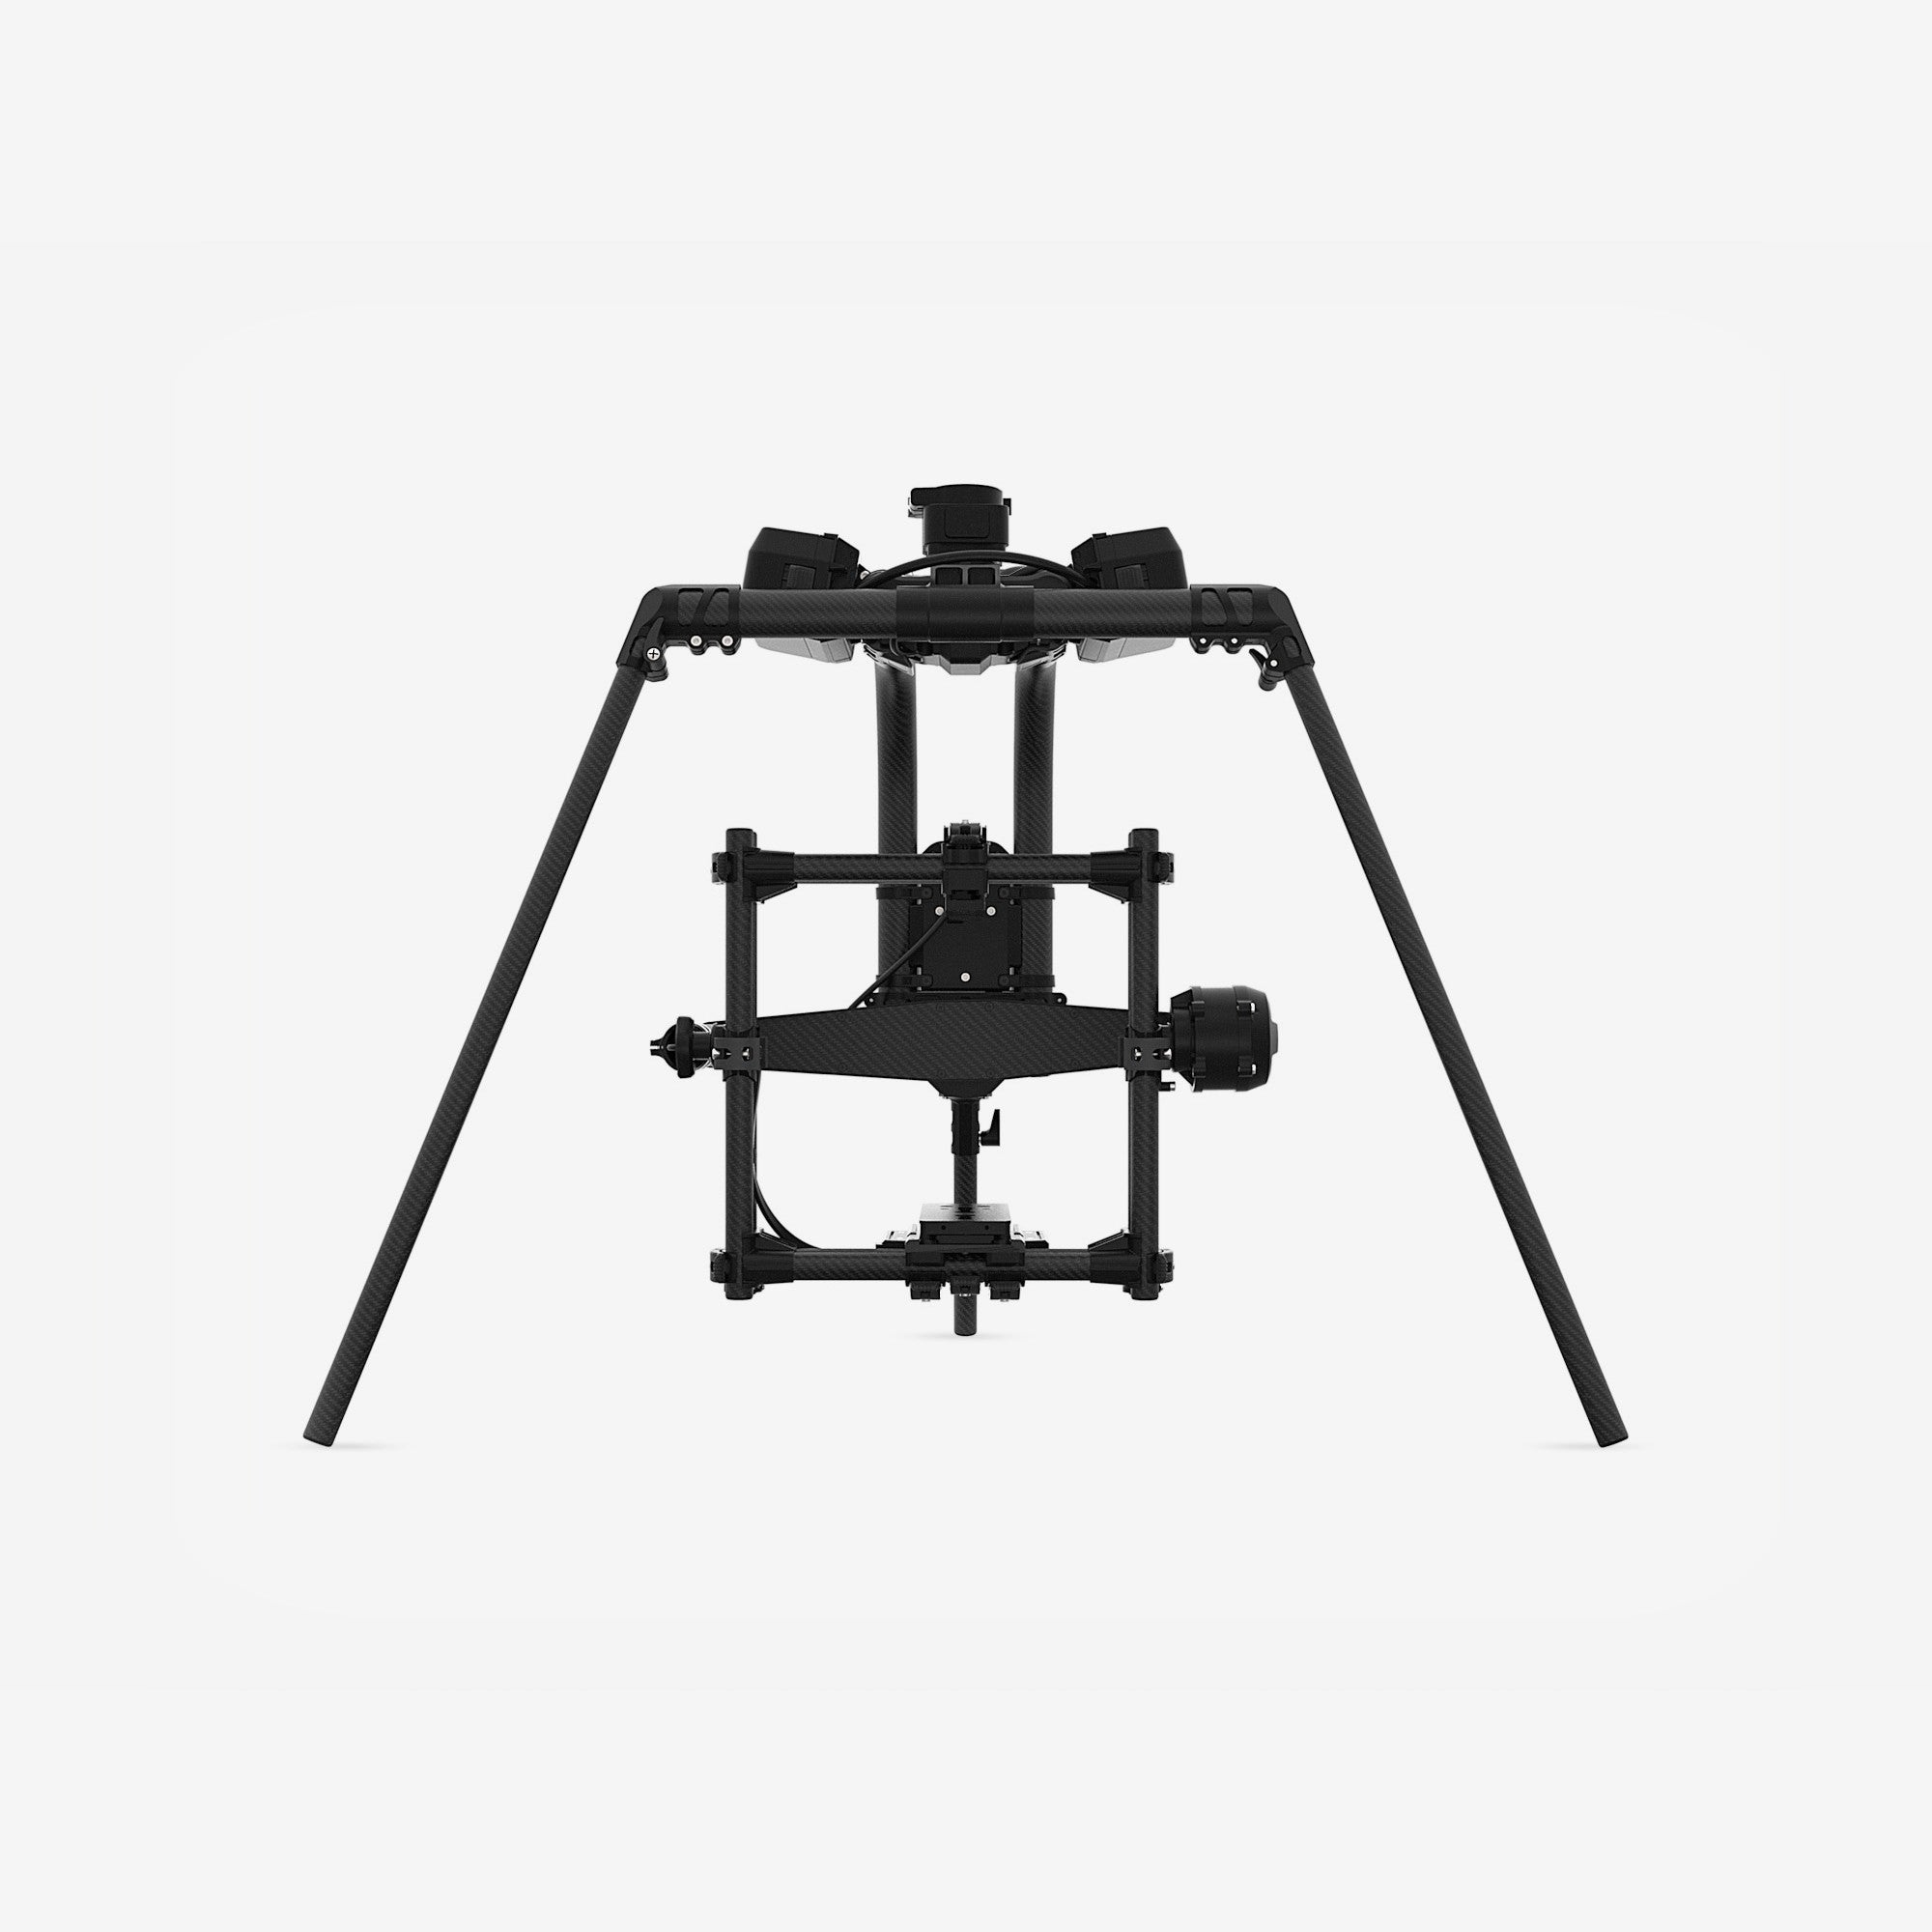 OPEN BOX - MōVI Pro Aerial Bundle with Case - 15% Off